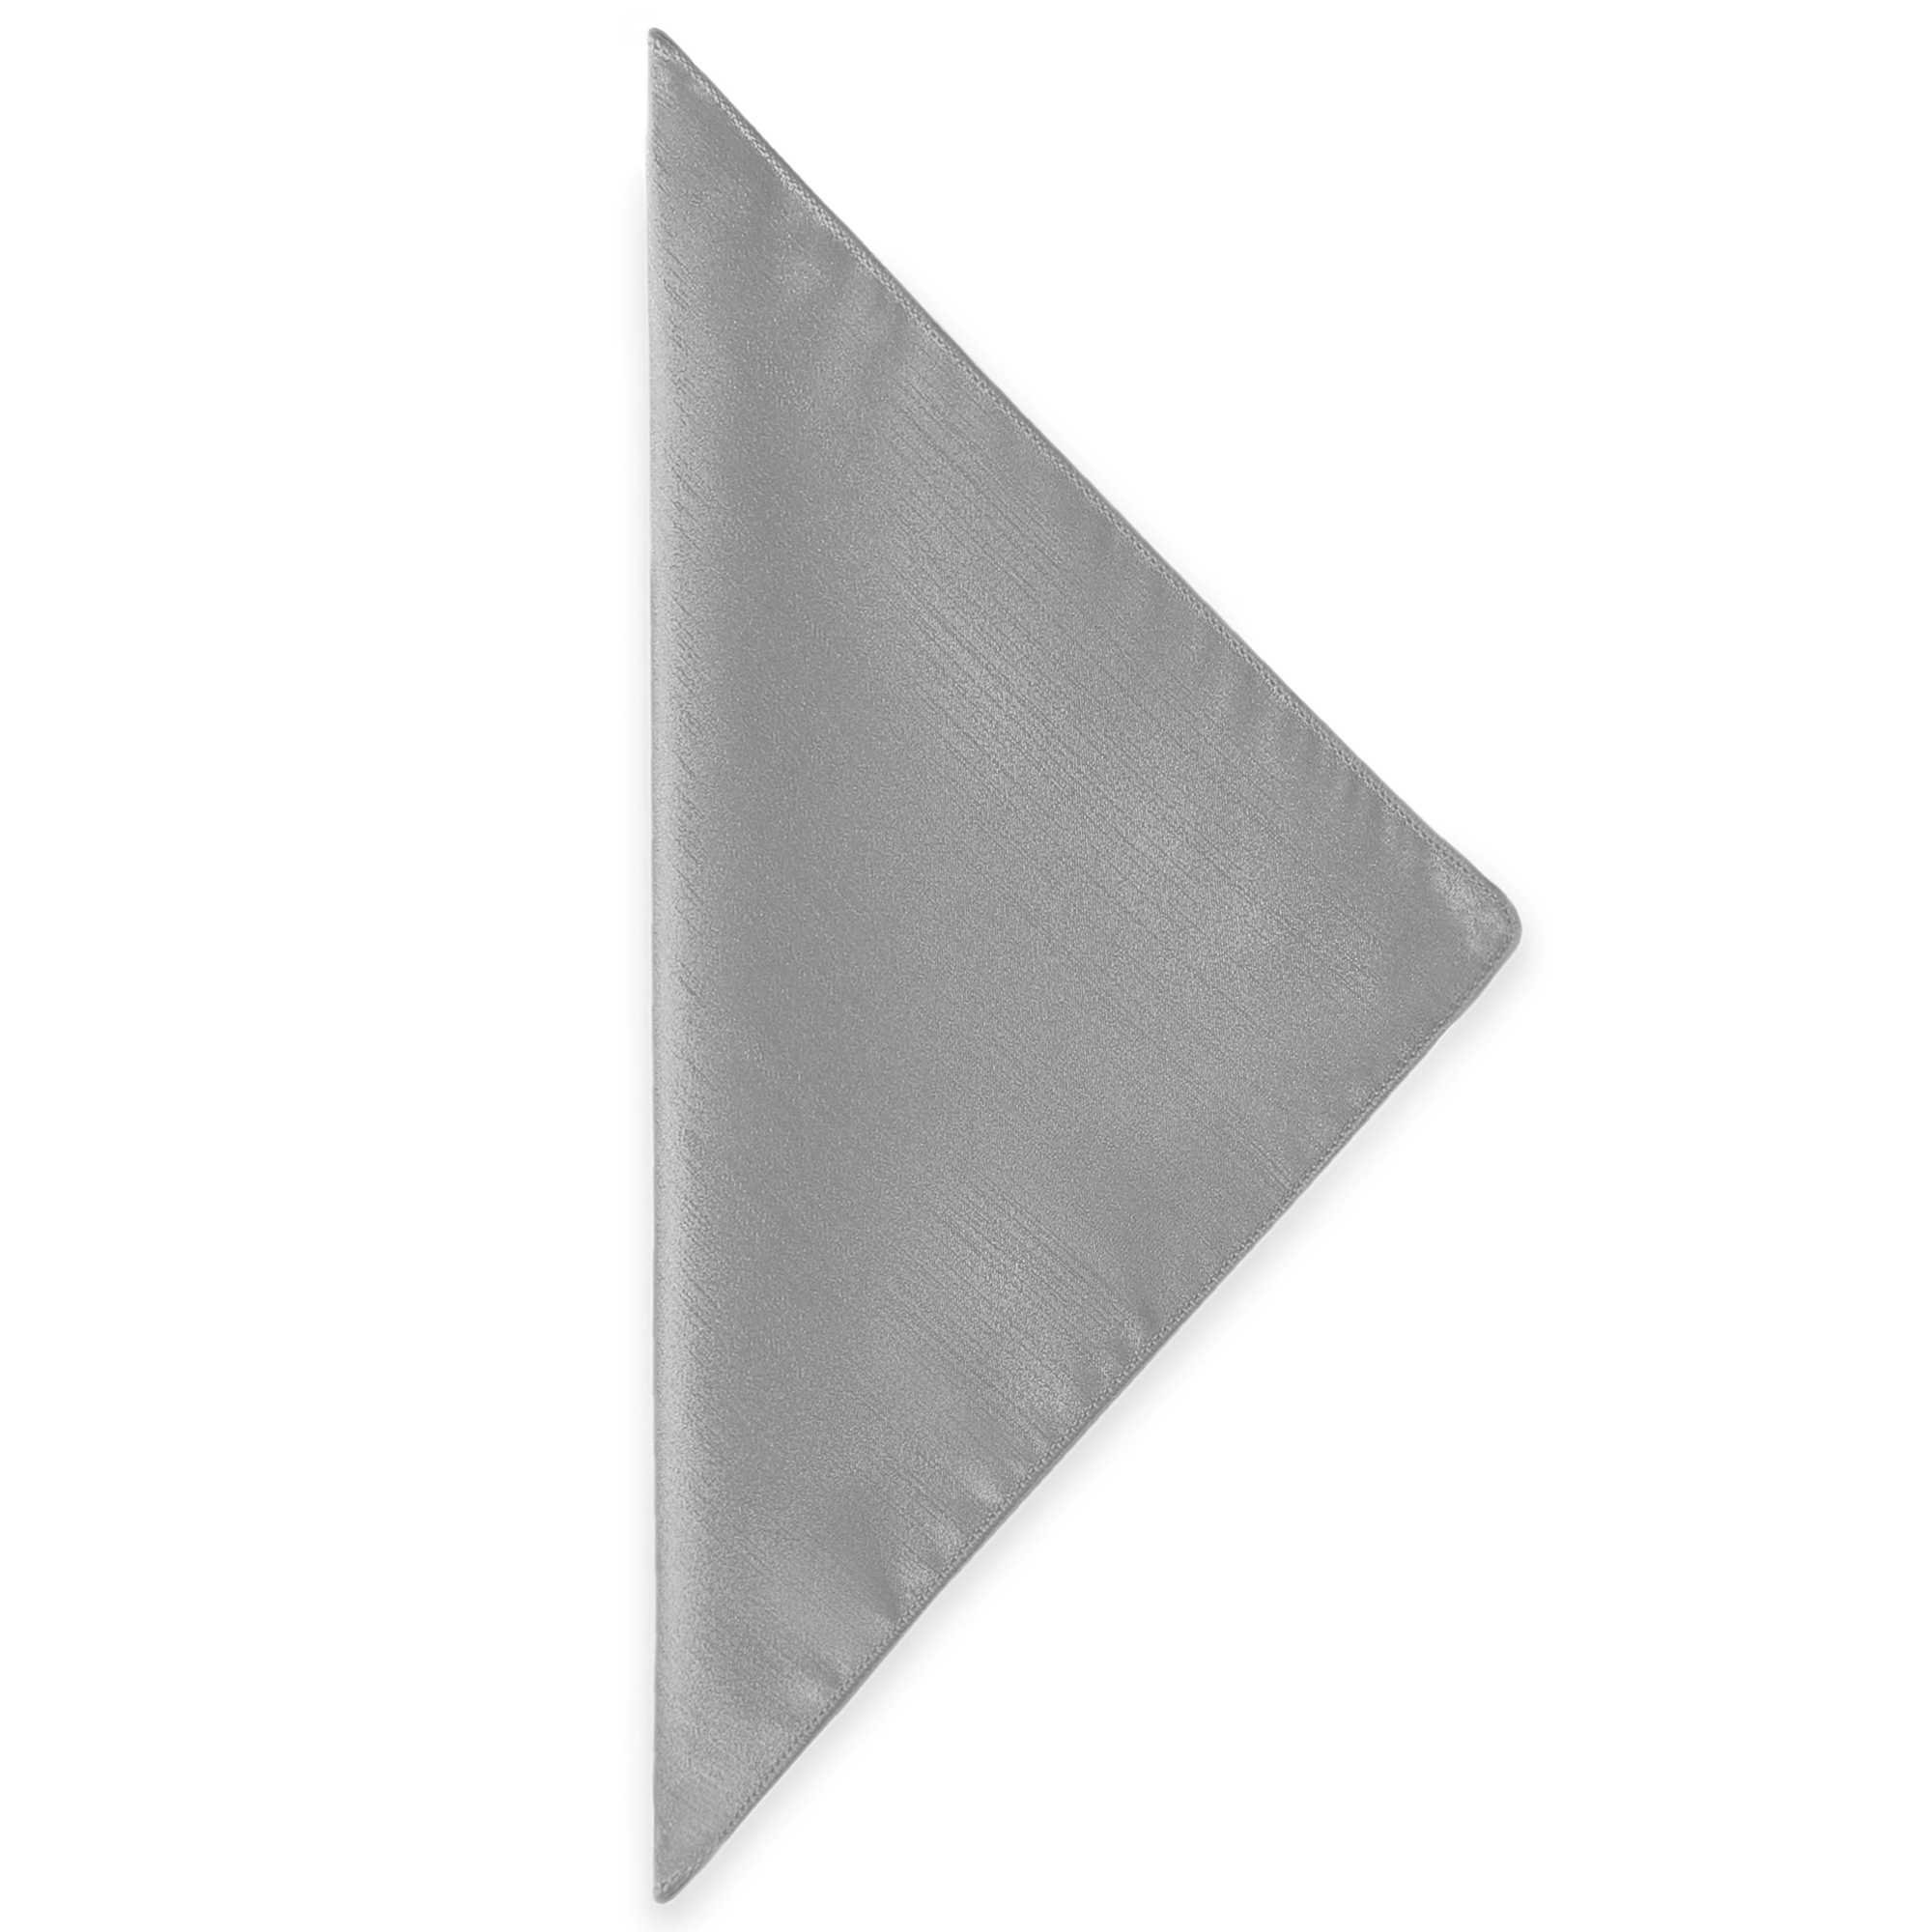 Ultimate Textile (46 Dozen) Reversible Shantung Satin - Majestic 20 x 20-Inch Cloth Dinner Napkins - for Weddings, Home Parties and Special Event use, Silver by Ultimate Textile